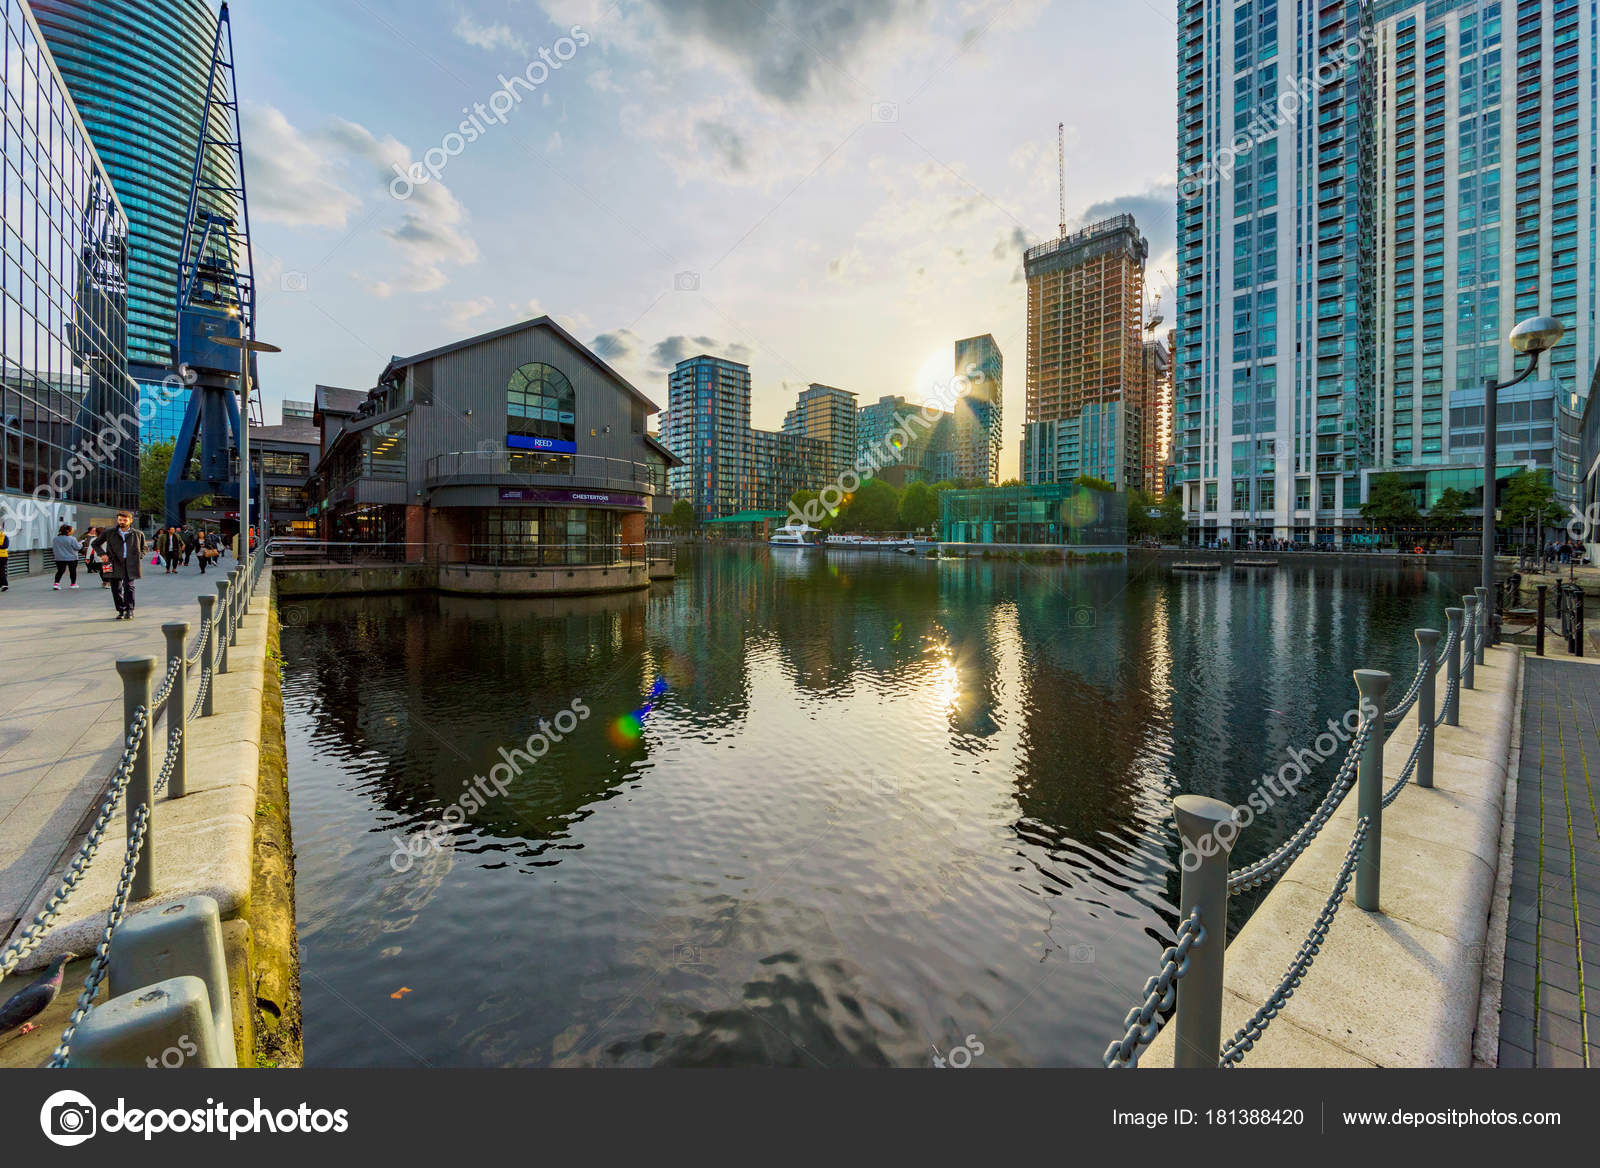 South Quay Architecture Stock Editorial Photo C Asiastock 181388420